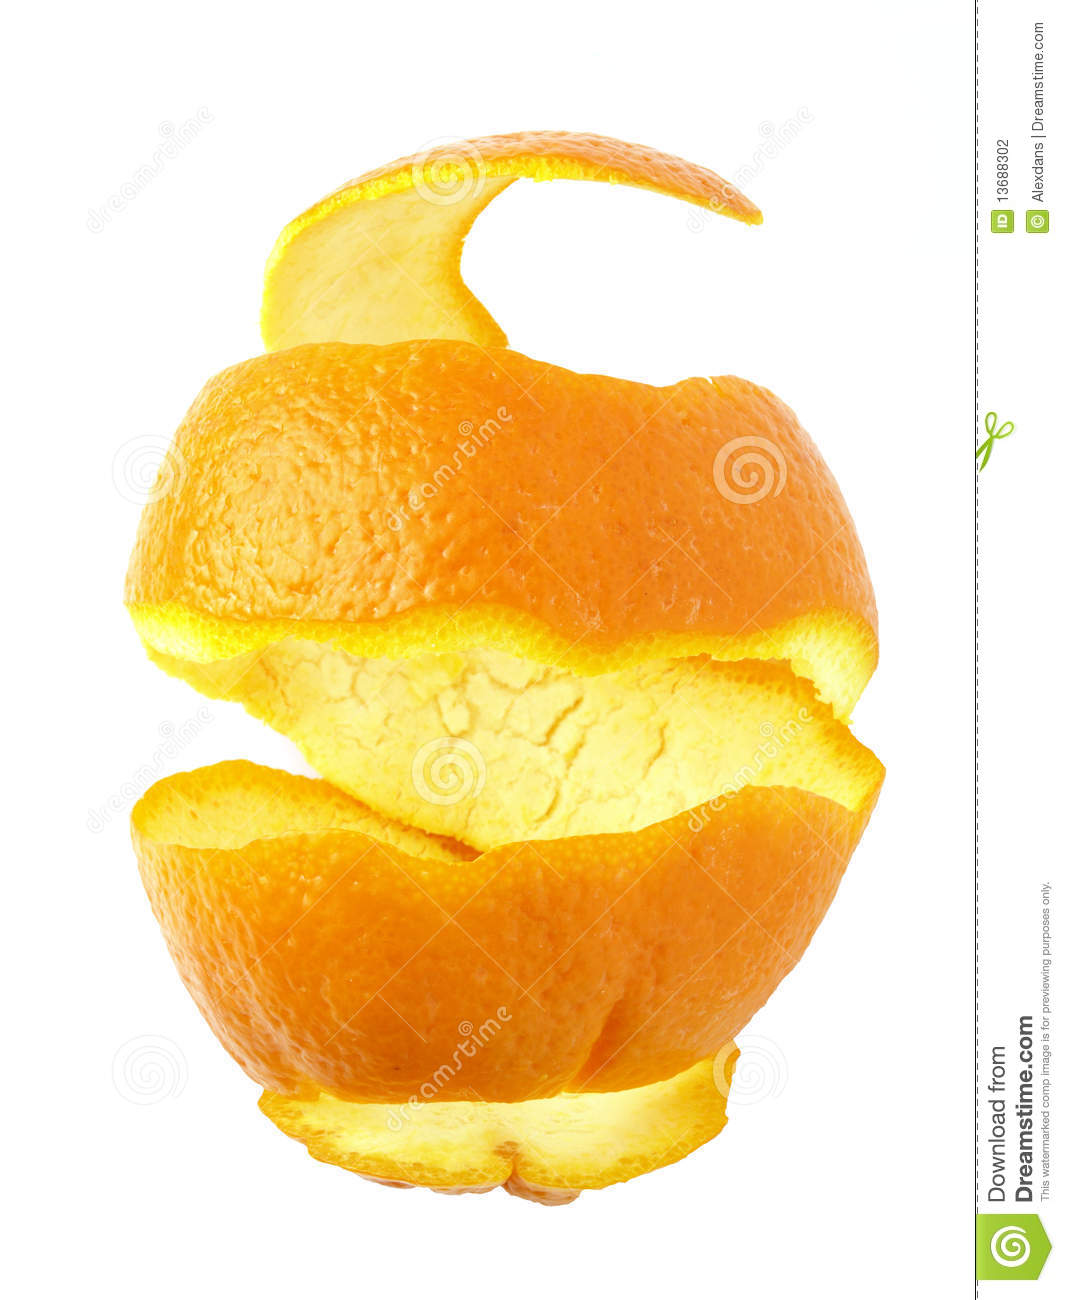 orange peel 56 reviews of the orange peel pretty standard smoothie and boba shop they can work with you to make drinks that is suitable for your taste and diet my friend had a bunch of request and they were able to make the drinks just how he likes it.